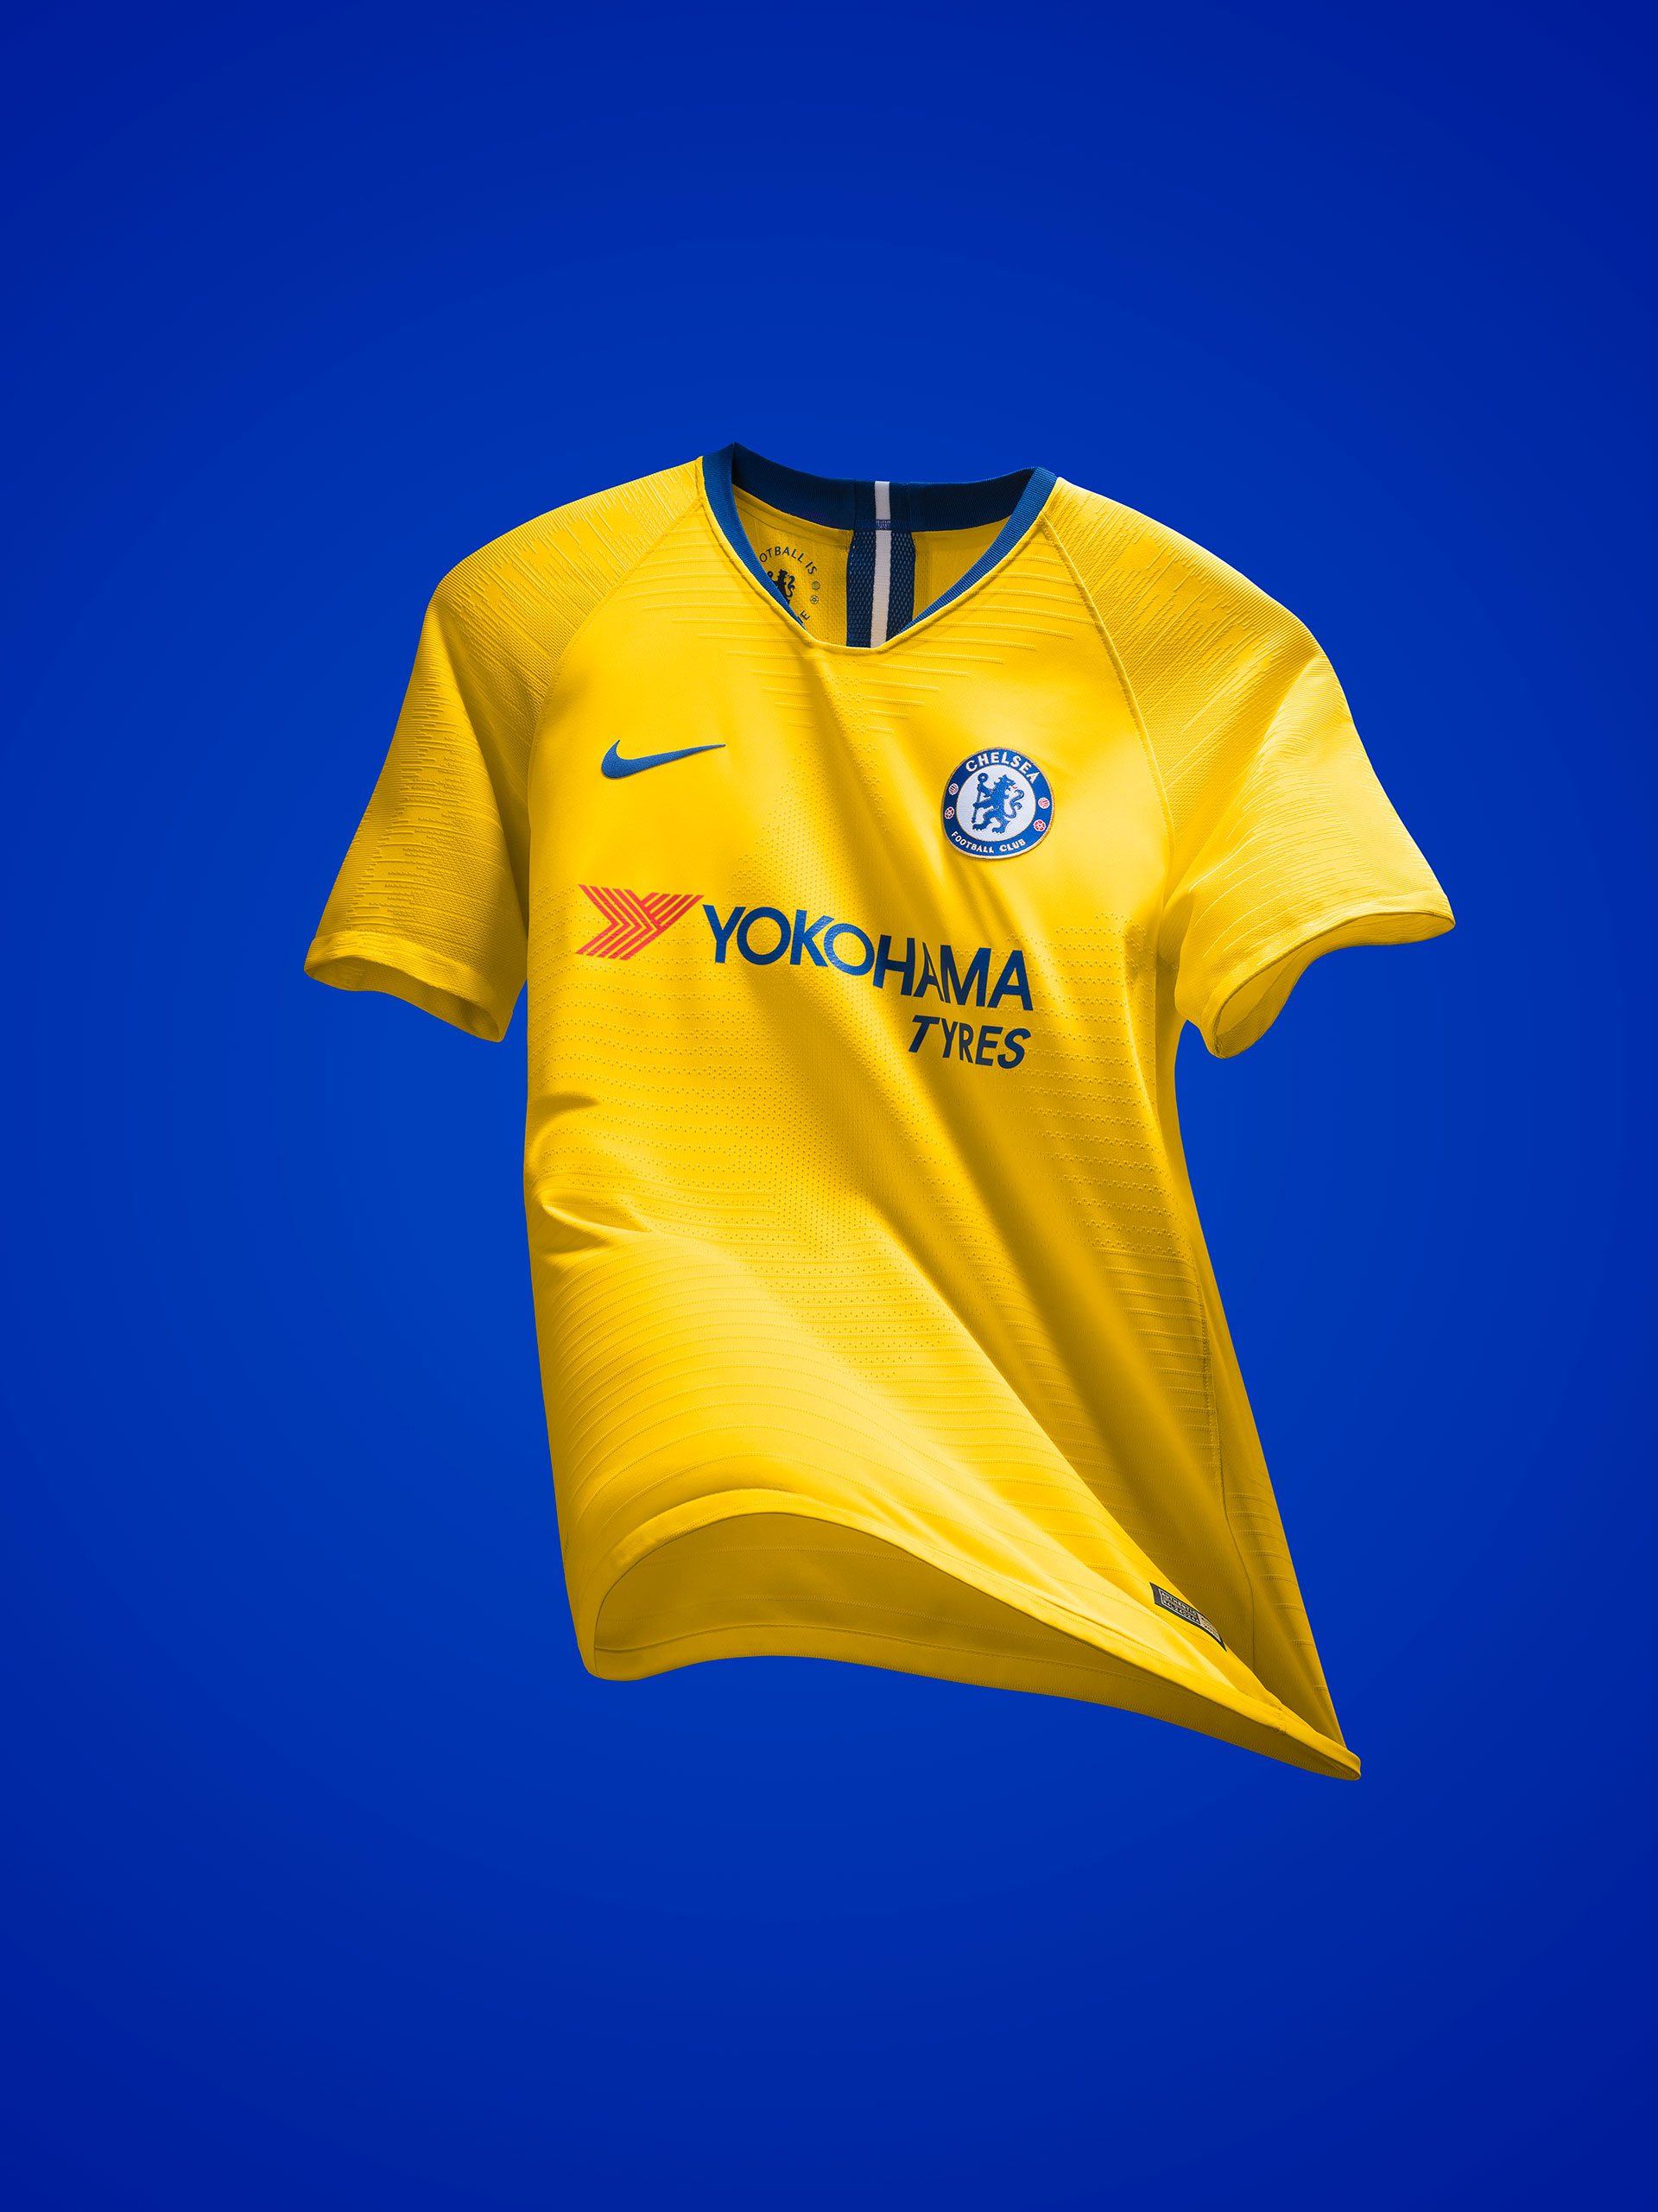 96526805c Nike and Chelsea launch gloriously yellow 2018-19 away kit - We Ain ...